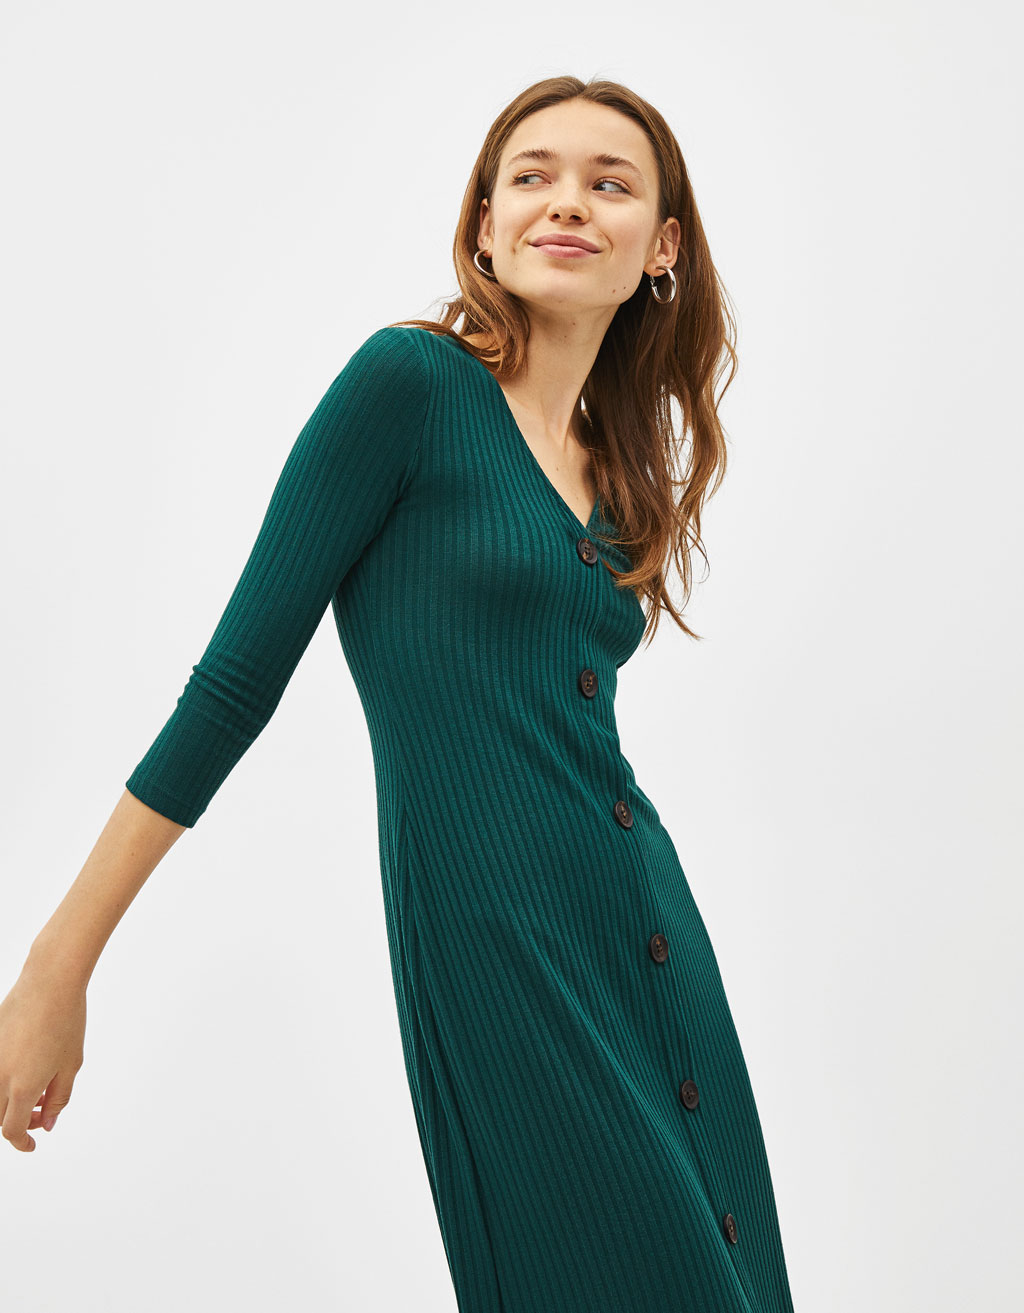 Button-up midi dress